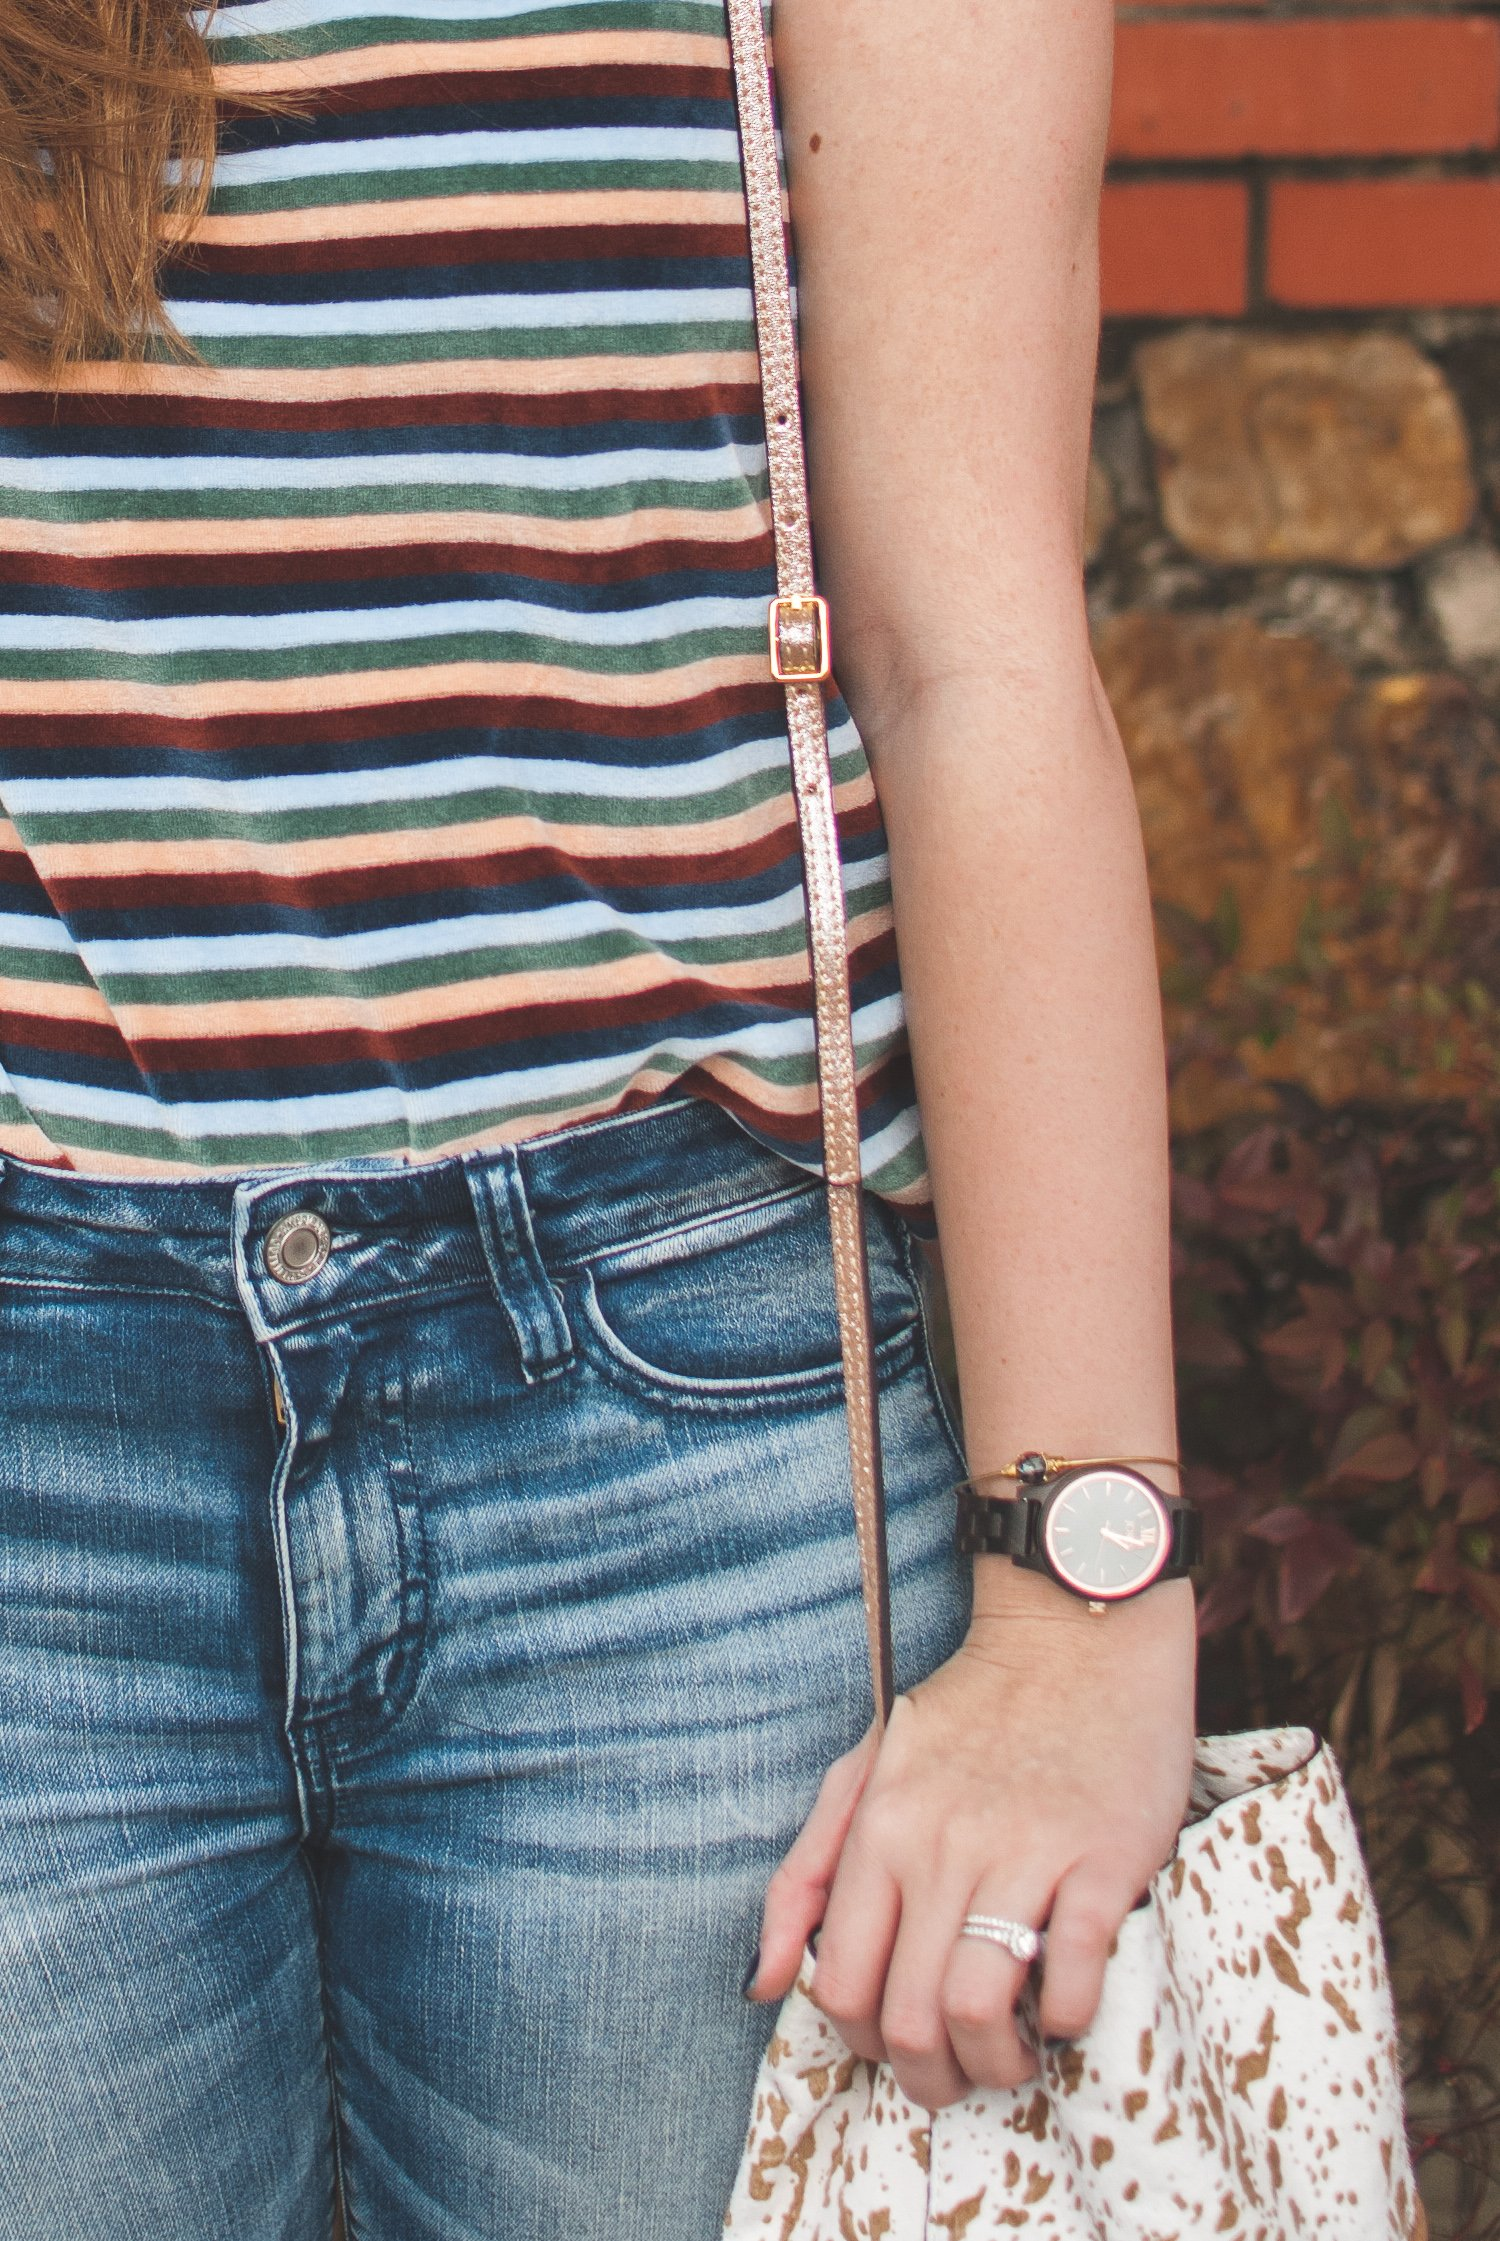 Velour Madewell top and JORD wooden watch